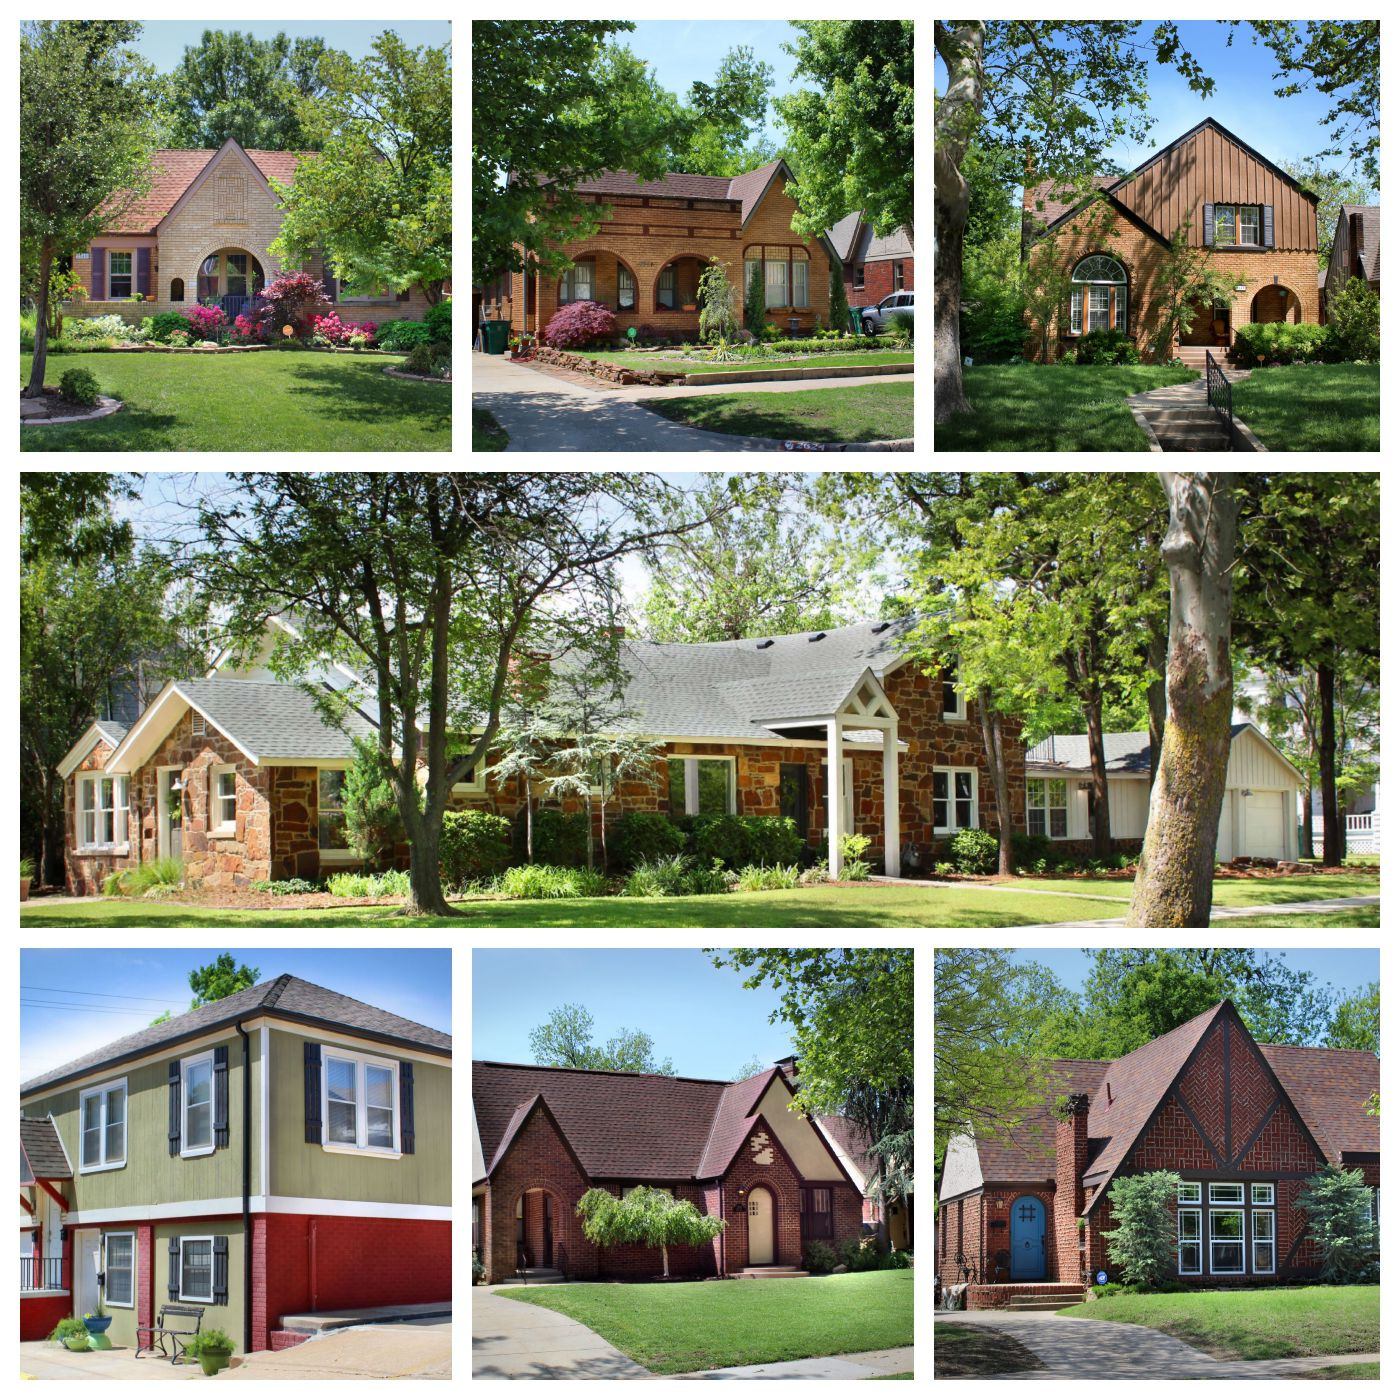 Miller in May Tour Homes Collage